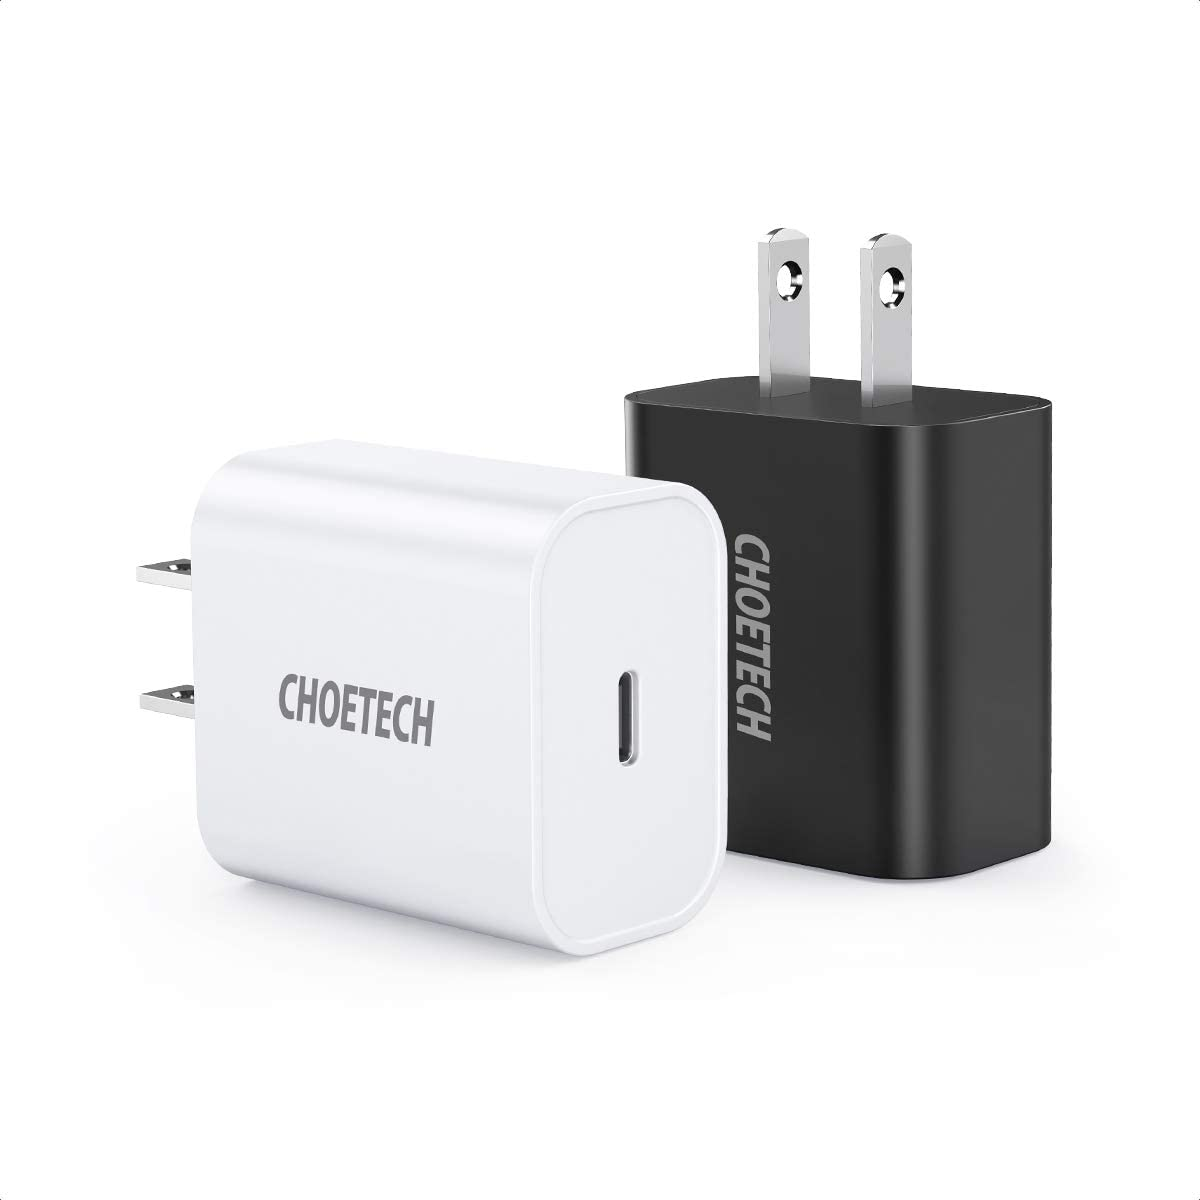 CHOETECH USB C Charger(2-Pack) for iPhone 12/12 Mini/12 Pro Max, 18W Fast Charger USB C Power Delivery Wall Charger for iPhone 11 Pro Max/SE/ XS/XR, iPad Pro, Galaxy S20 Ultra/S20, Google Pixel 4/3XL